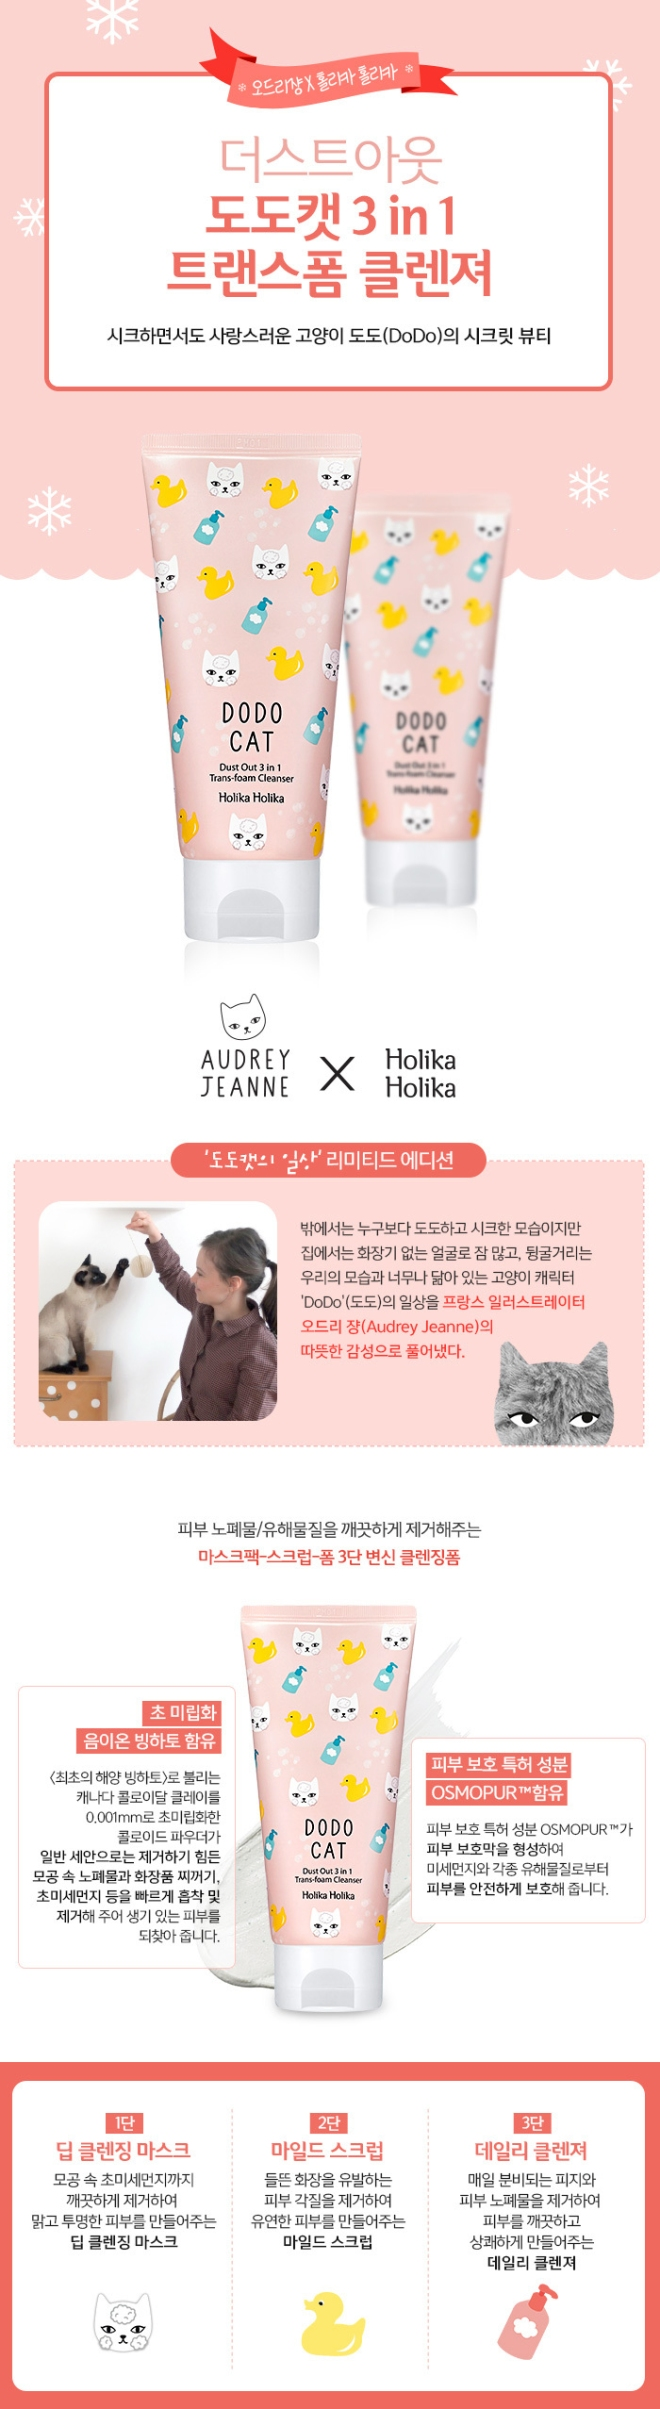 Holika Holika x Audrey Jeanne - Dust Out 3 in 1 Trans-form Cleanser